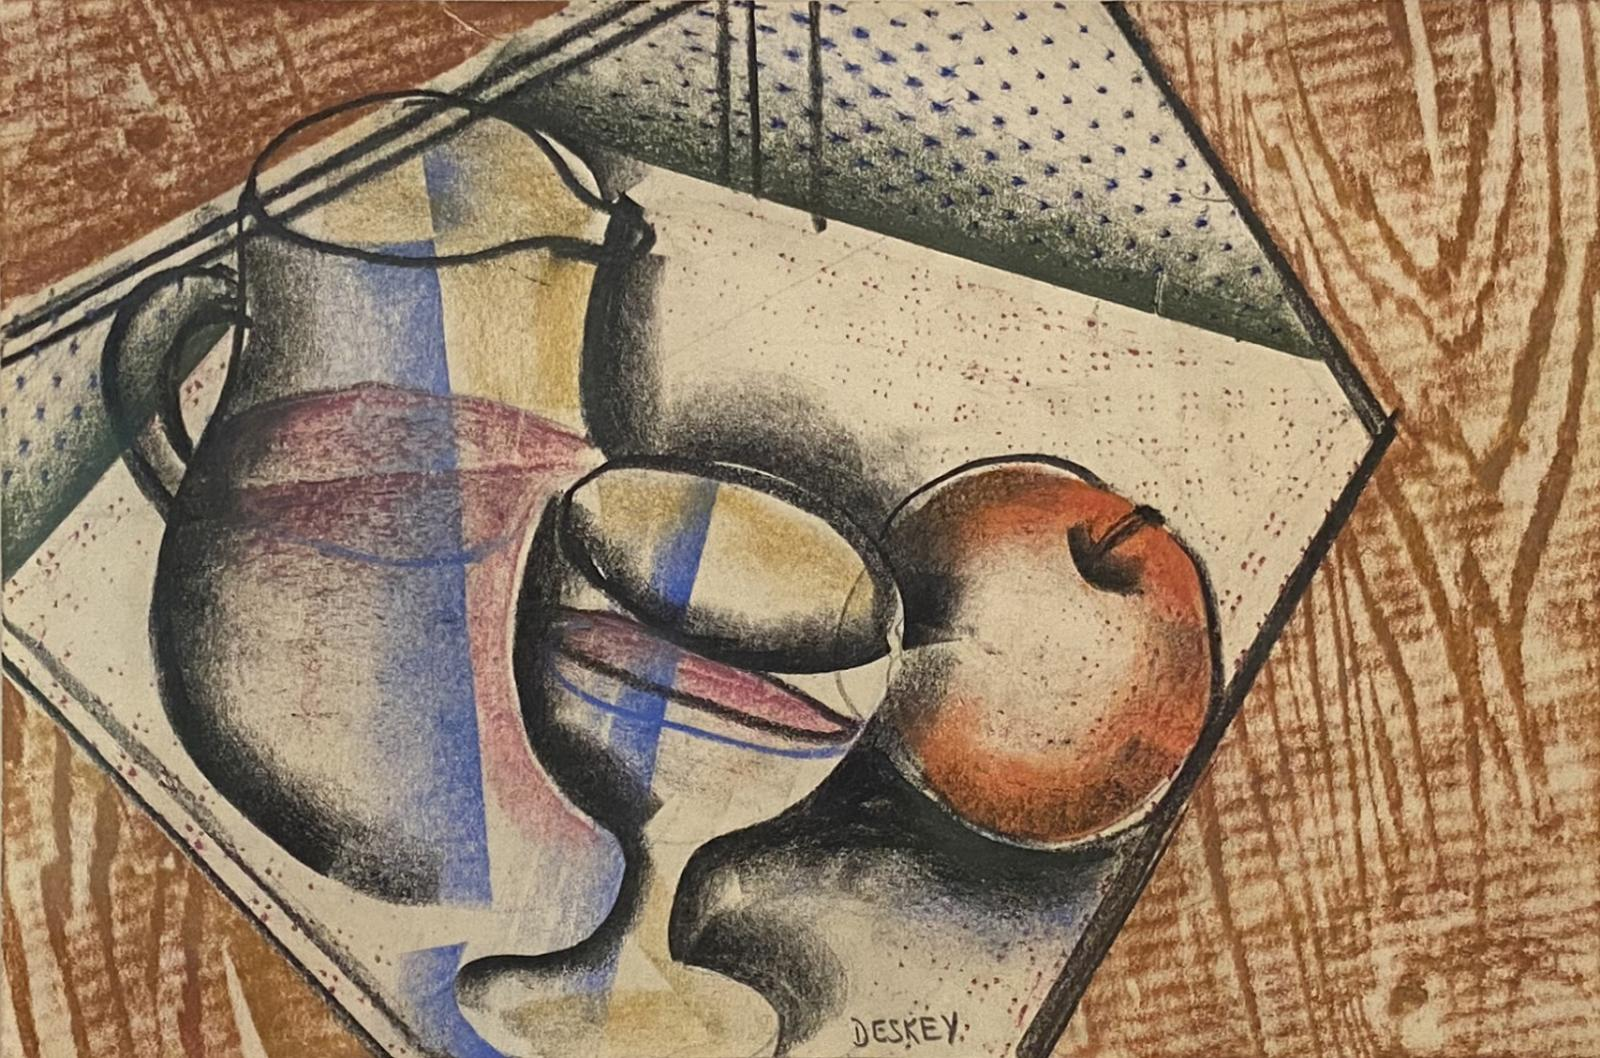 Cubist style drawing of a table top with a pitcher, apple, and glass